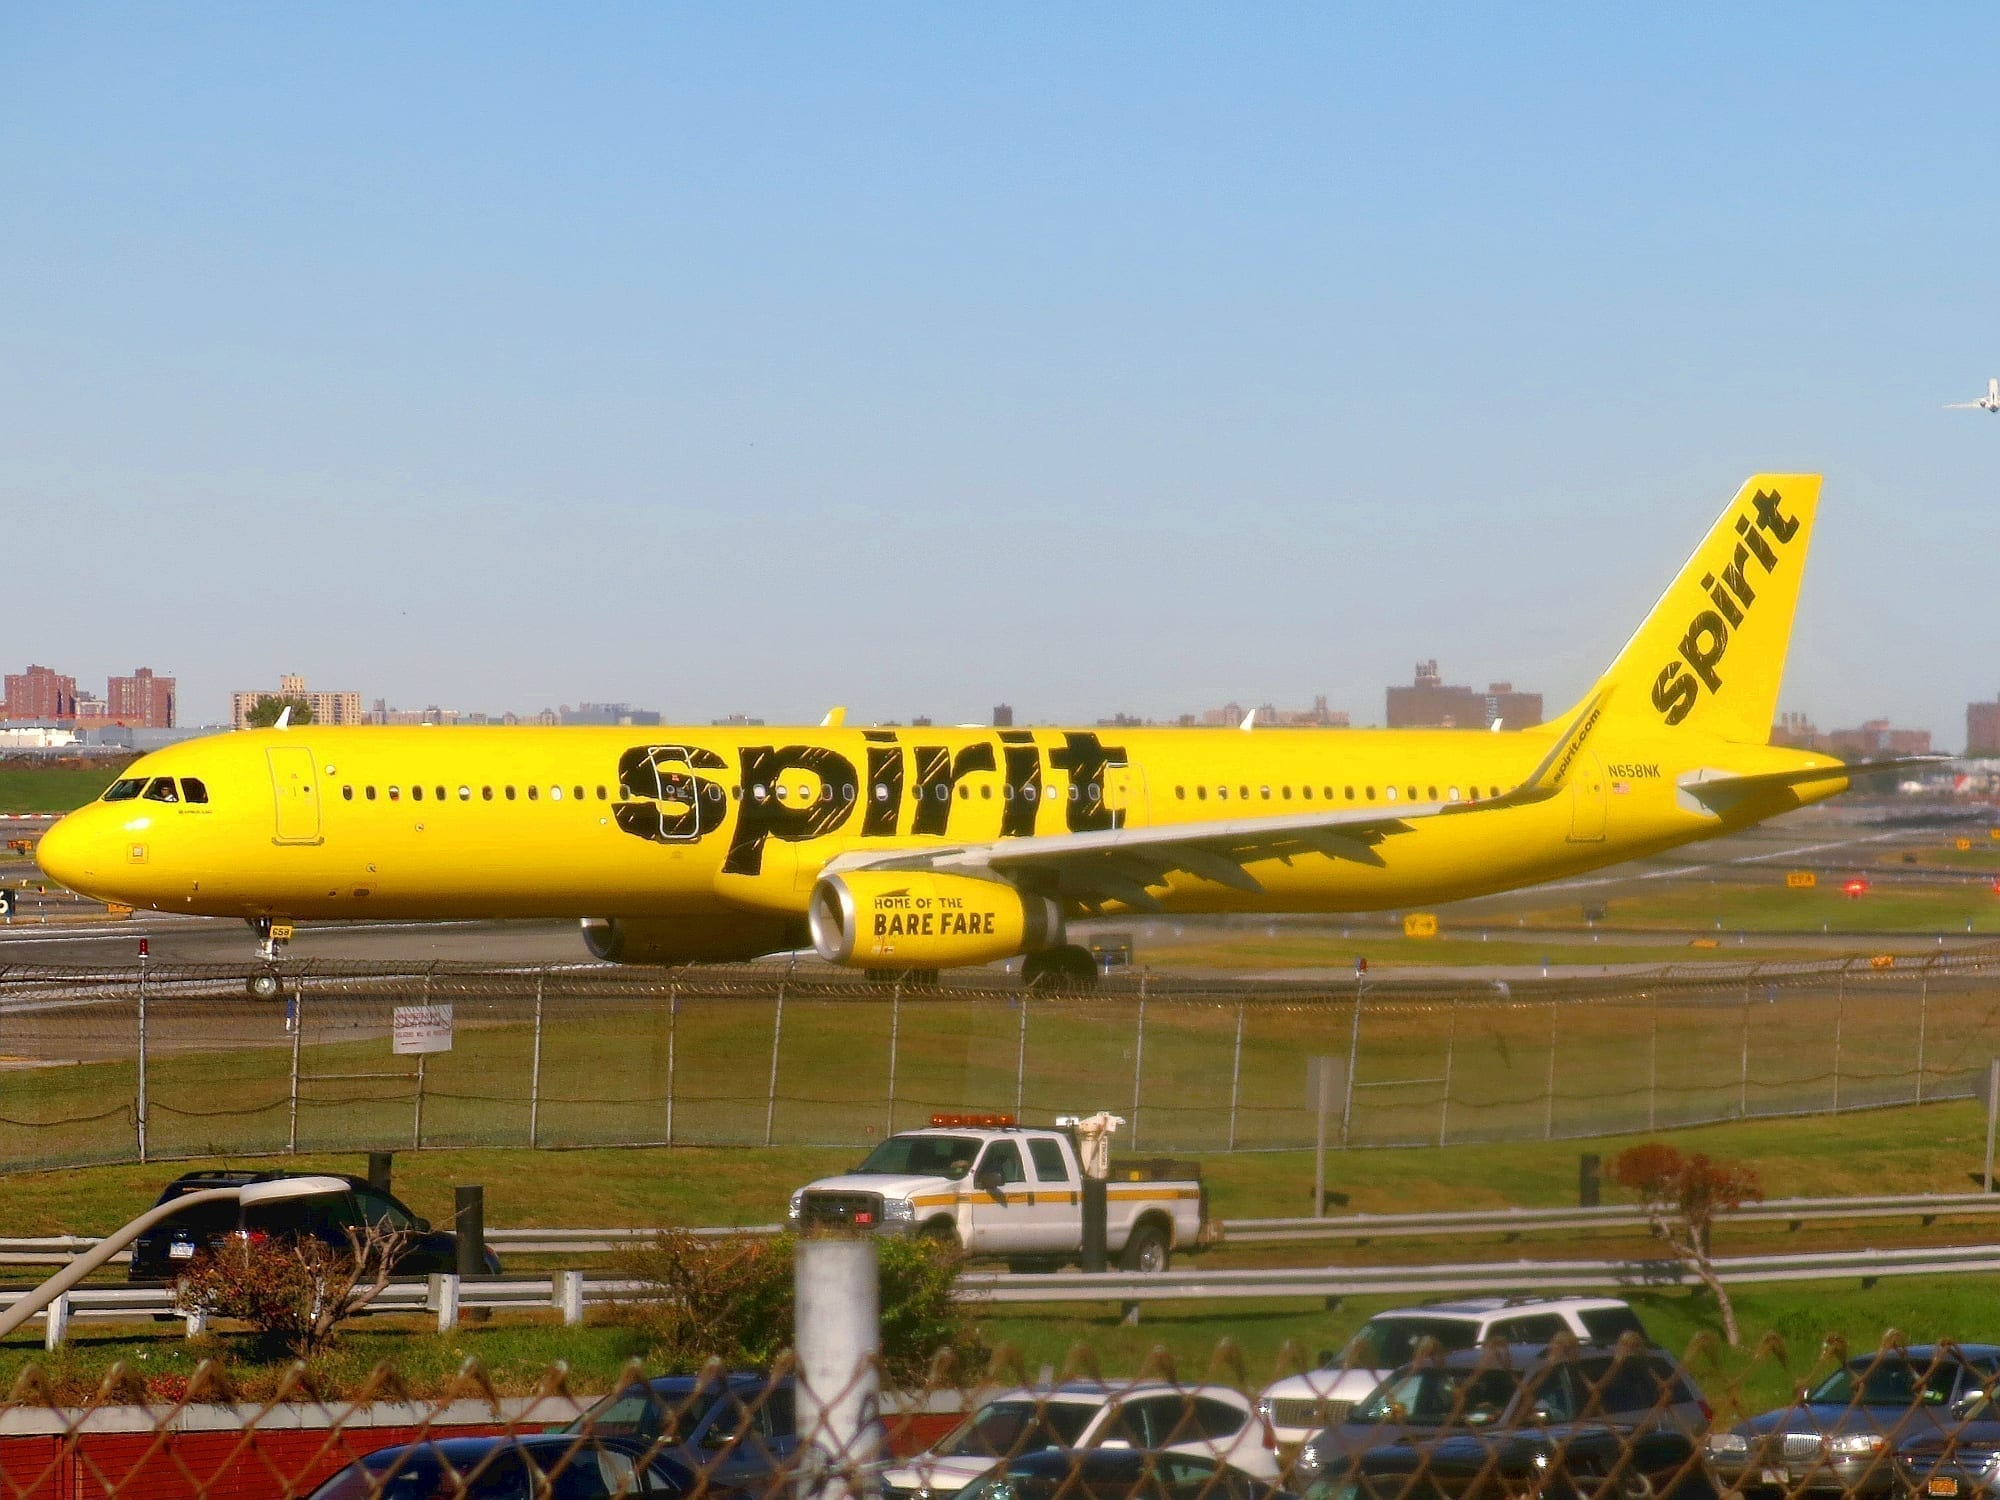 spirit airlines airbus a321 231(wl) n658nk